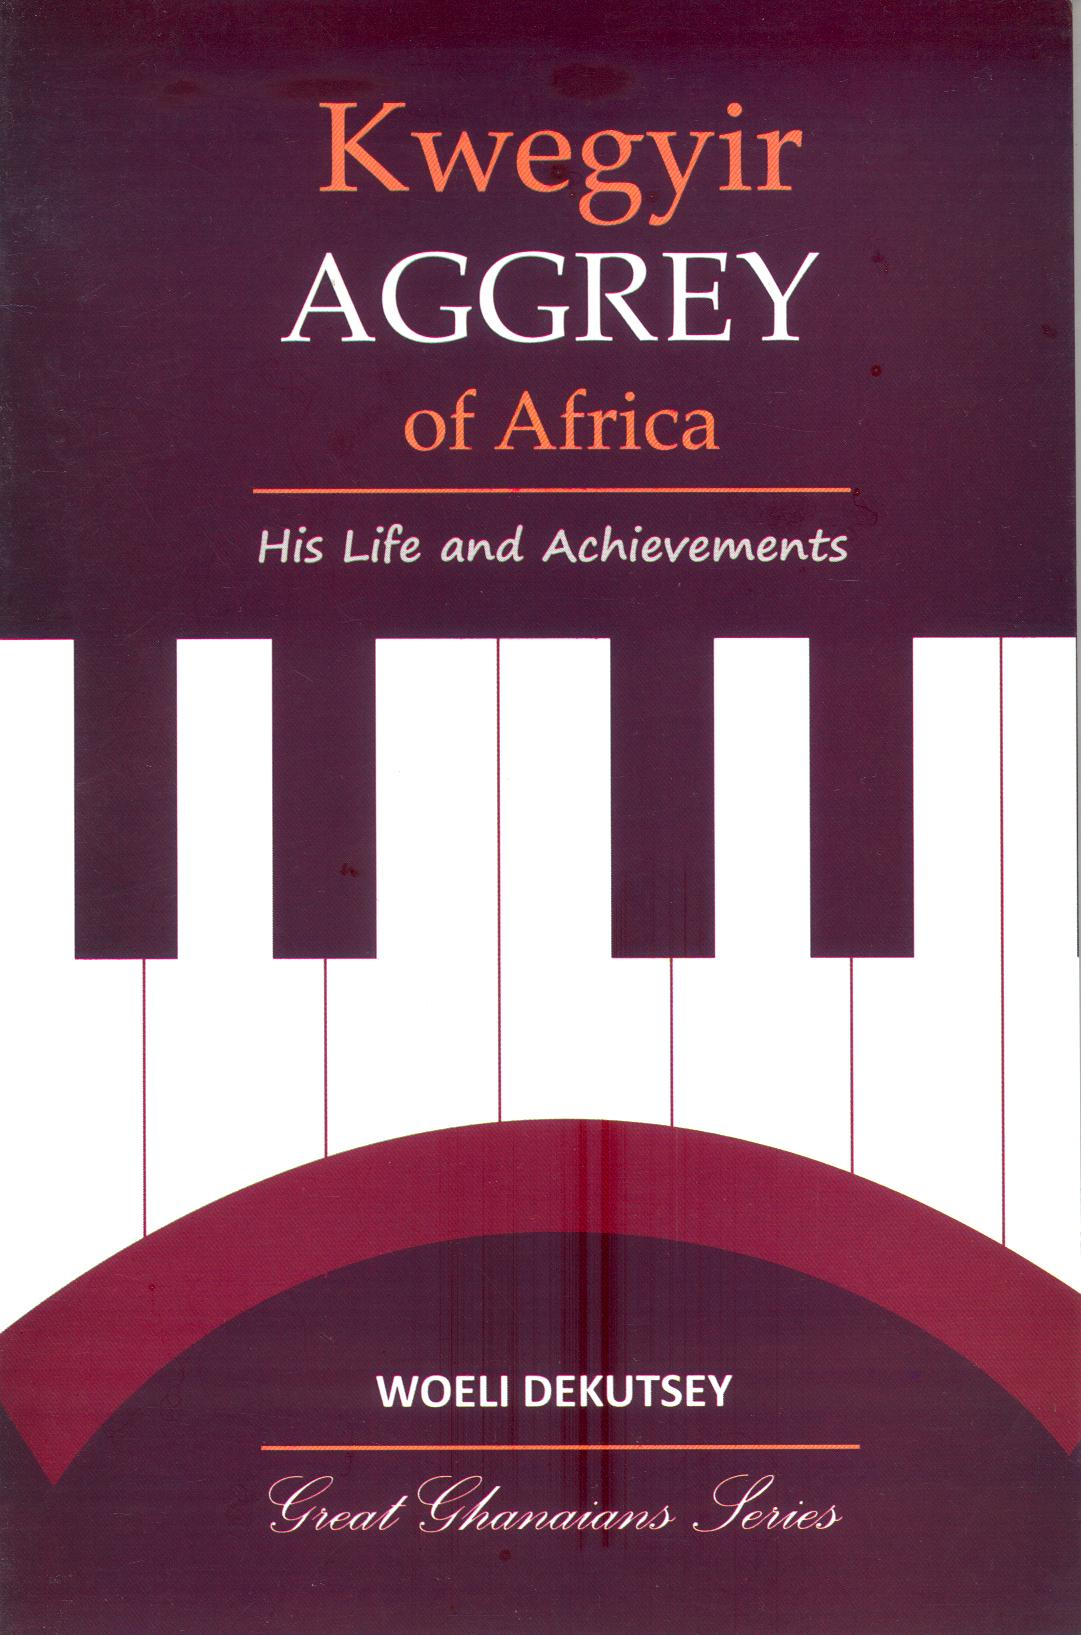 KWEGYIR AGGREY OF AFRICA His Life and Achievements